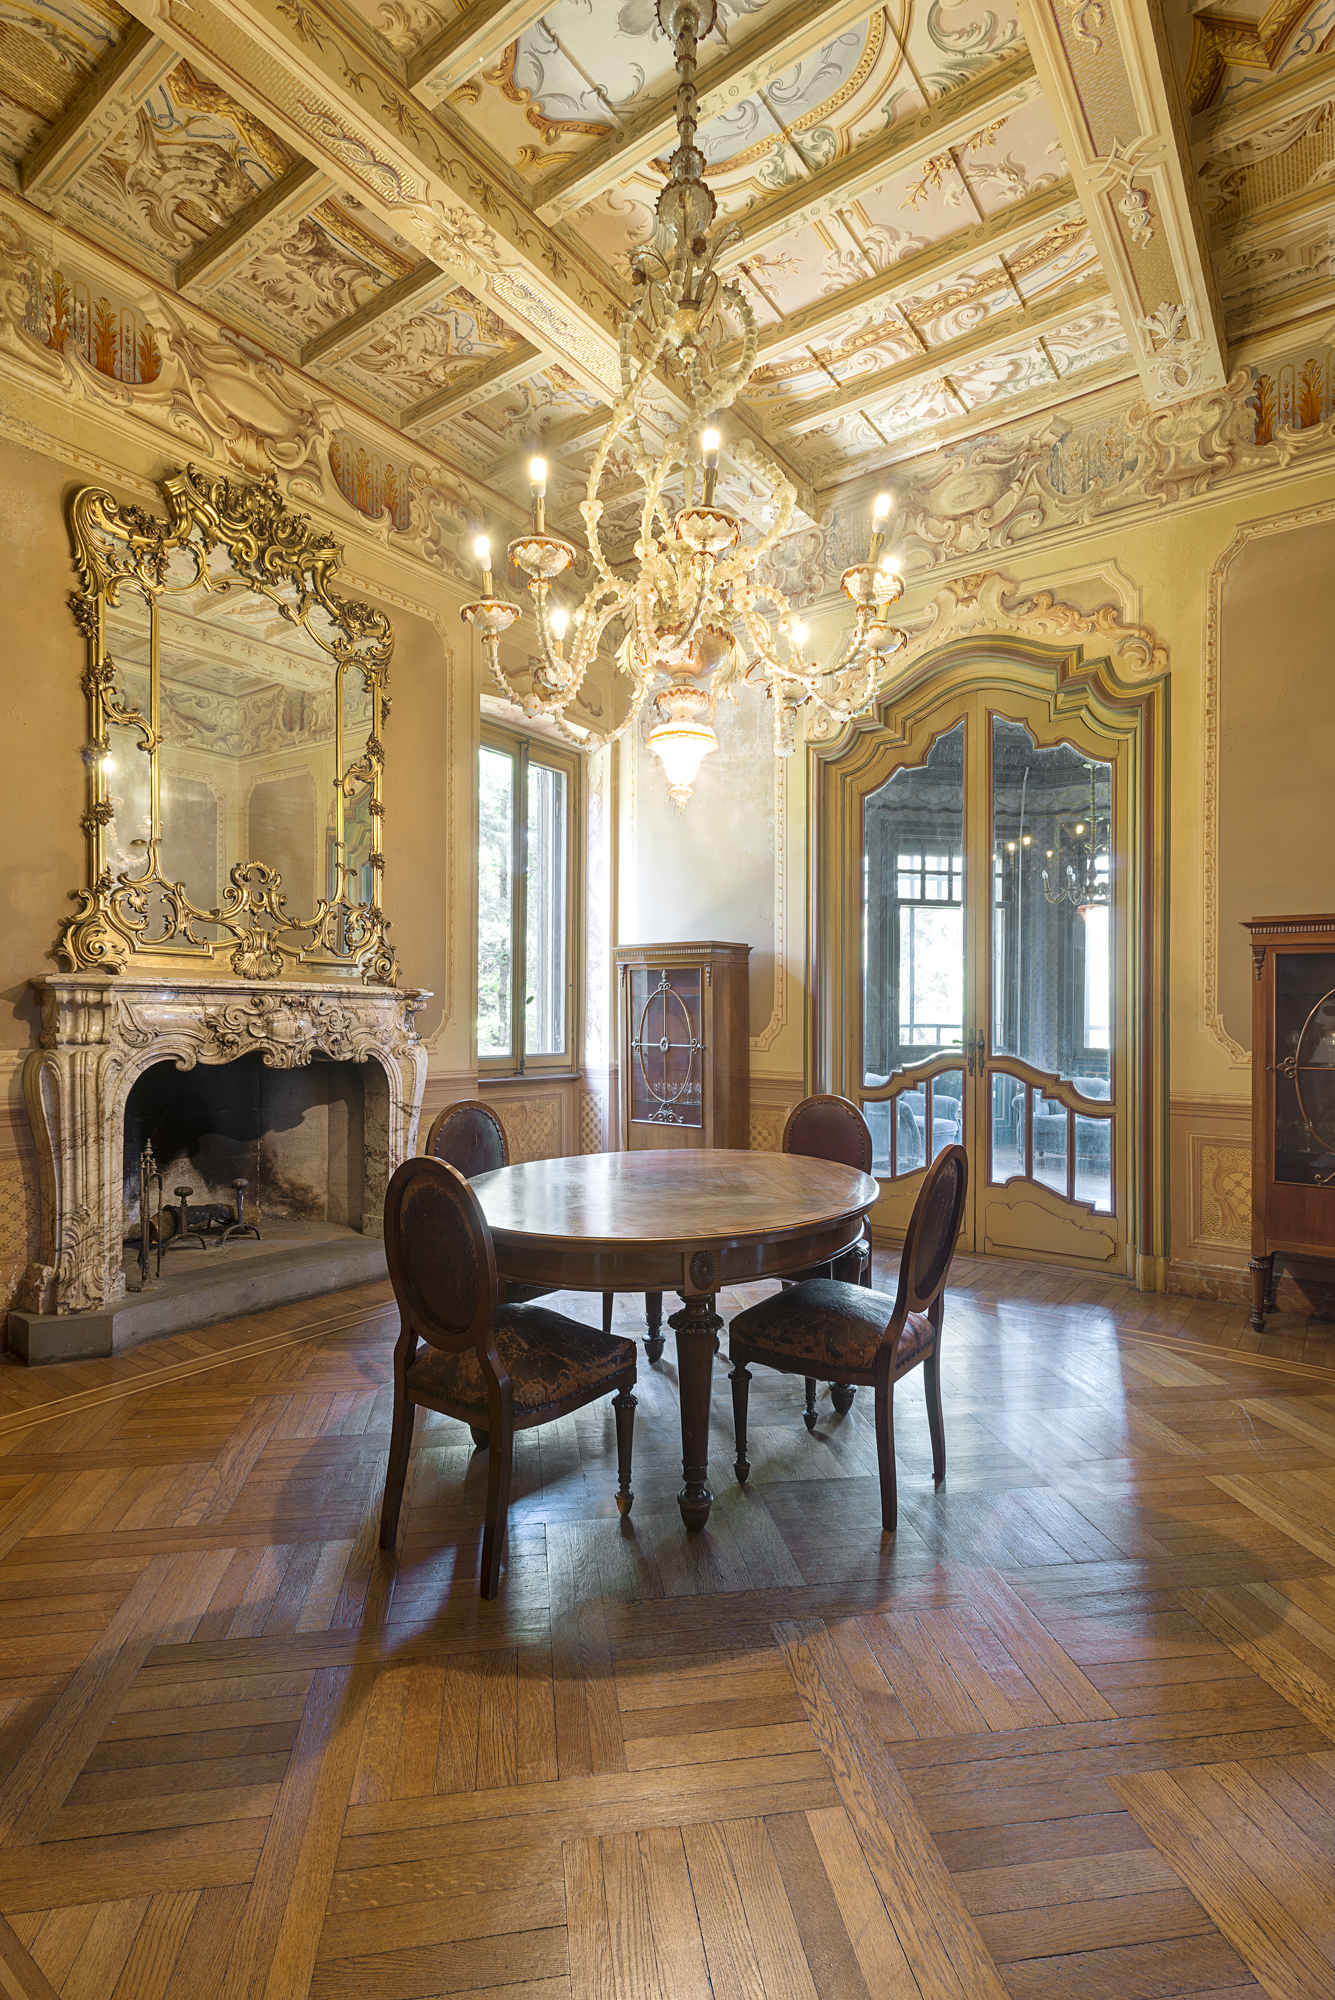 Additional photo for property listing at Beautiful Art Nouveau villa viale 1° Maggio Salsomaggiore Terme, Parma 43125 Italia